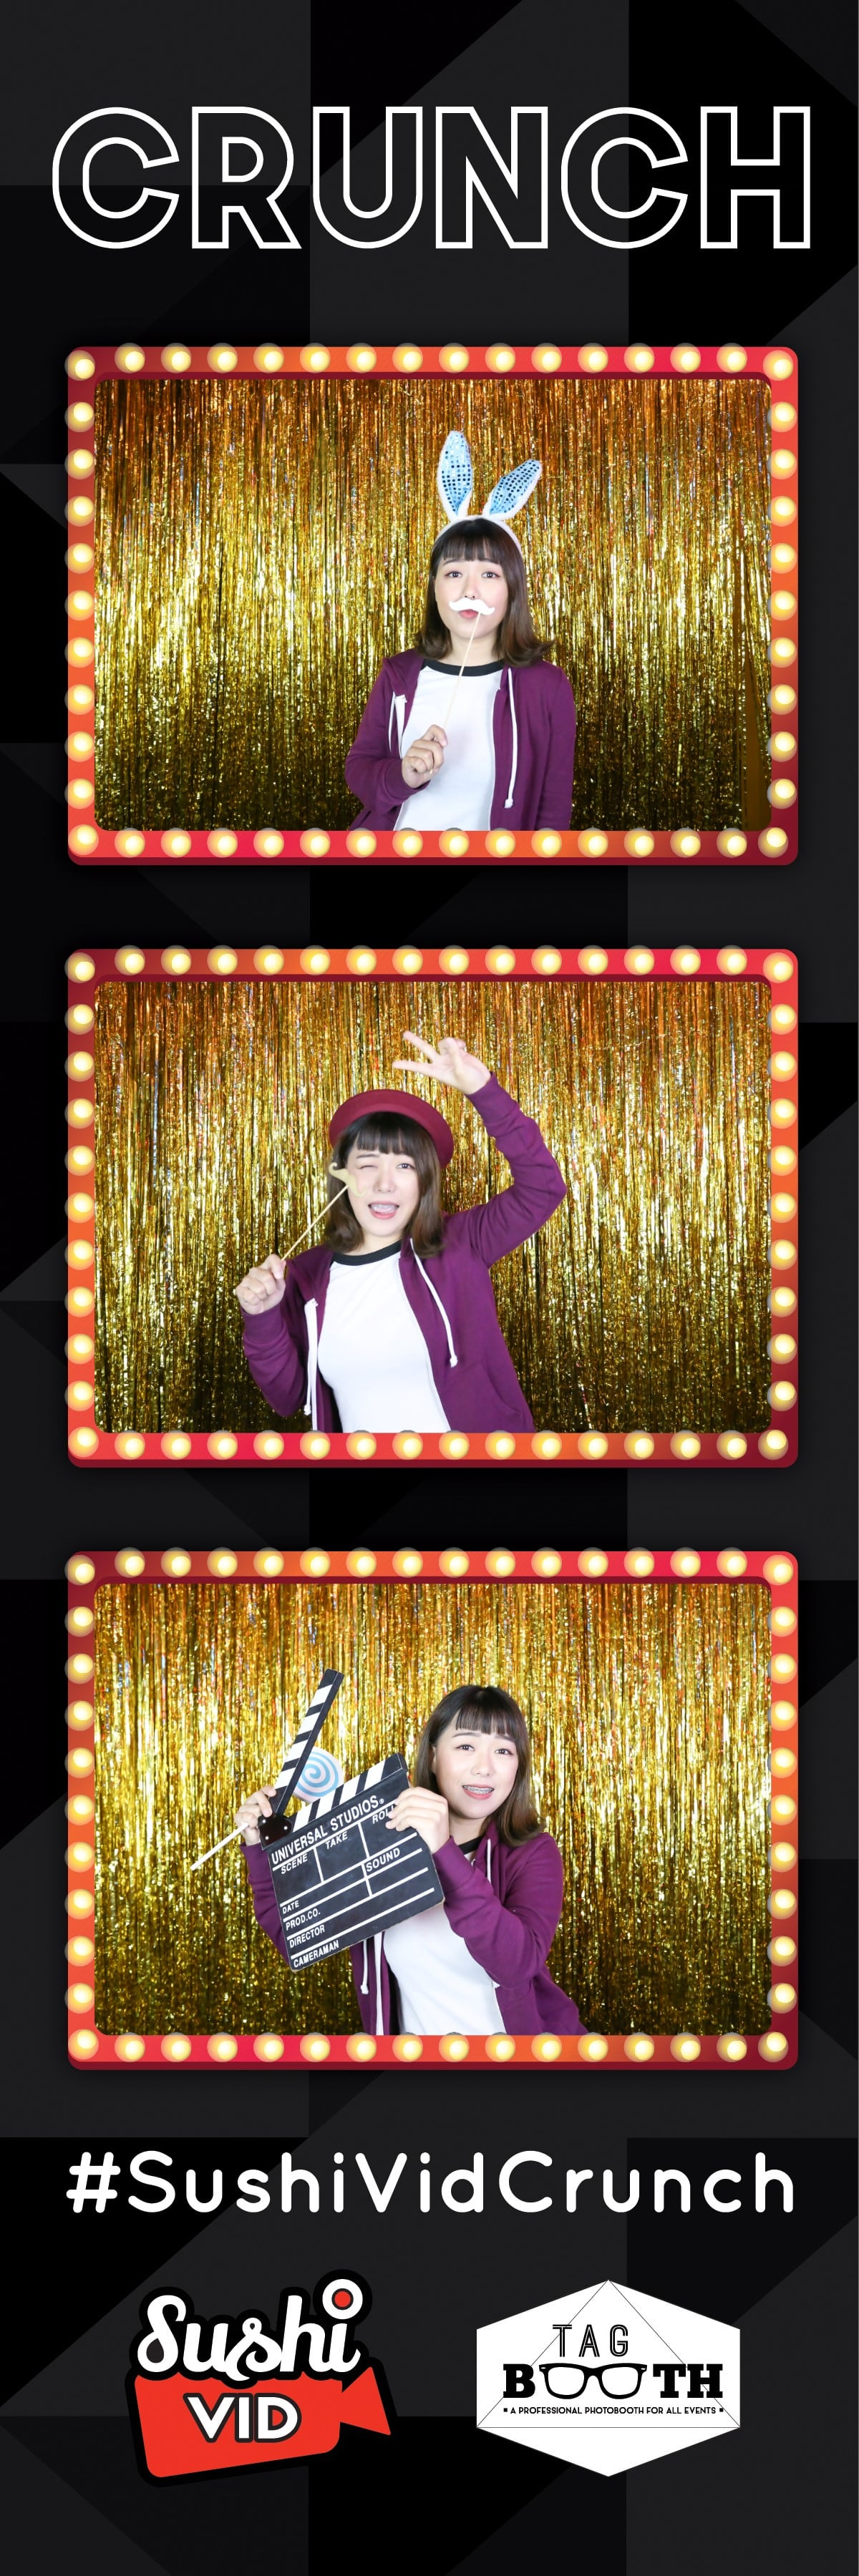 Sushivid+crunch+tagbooth1+49